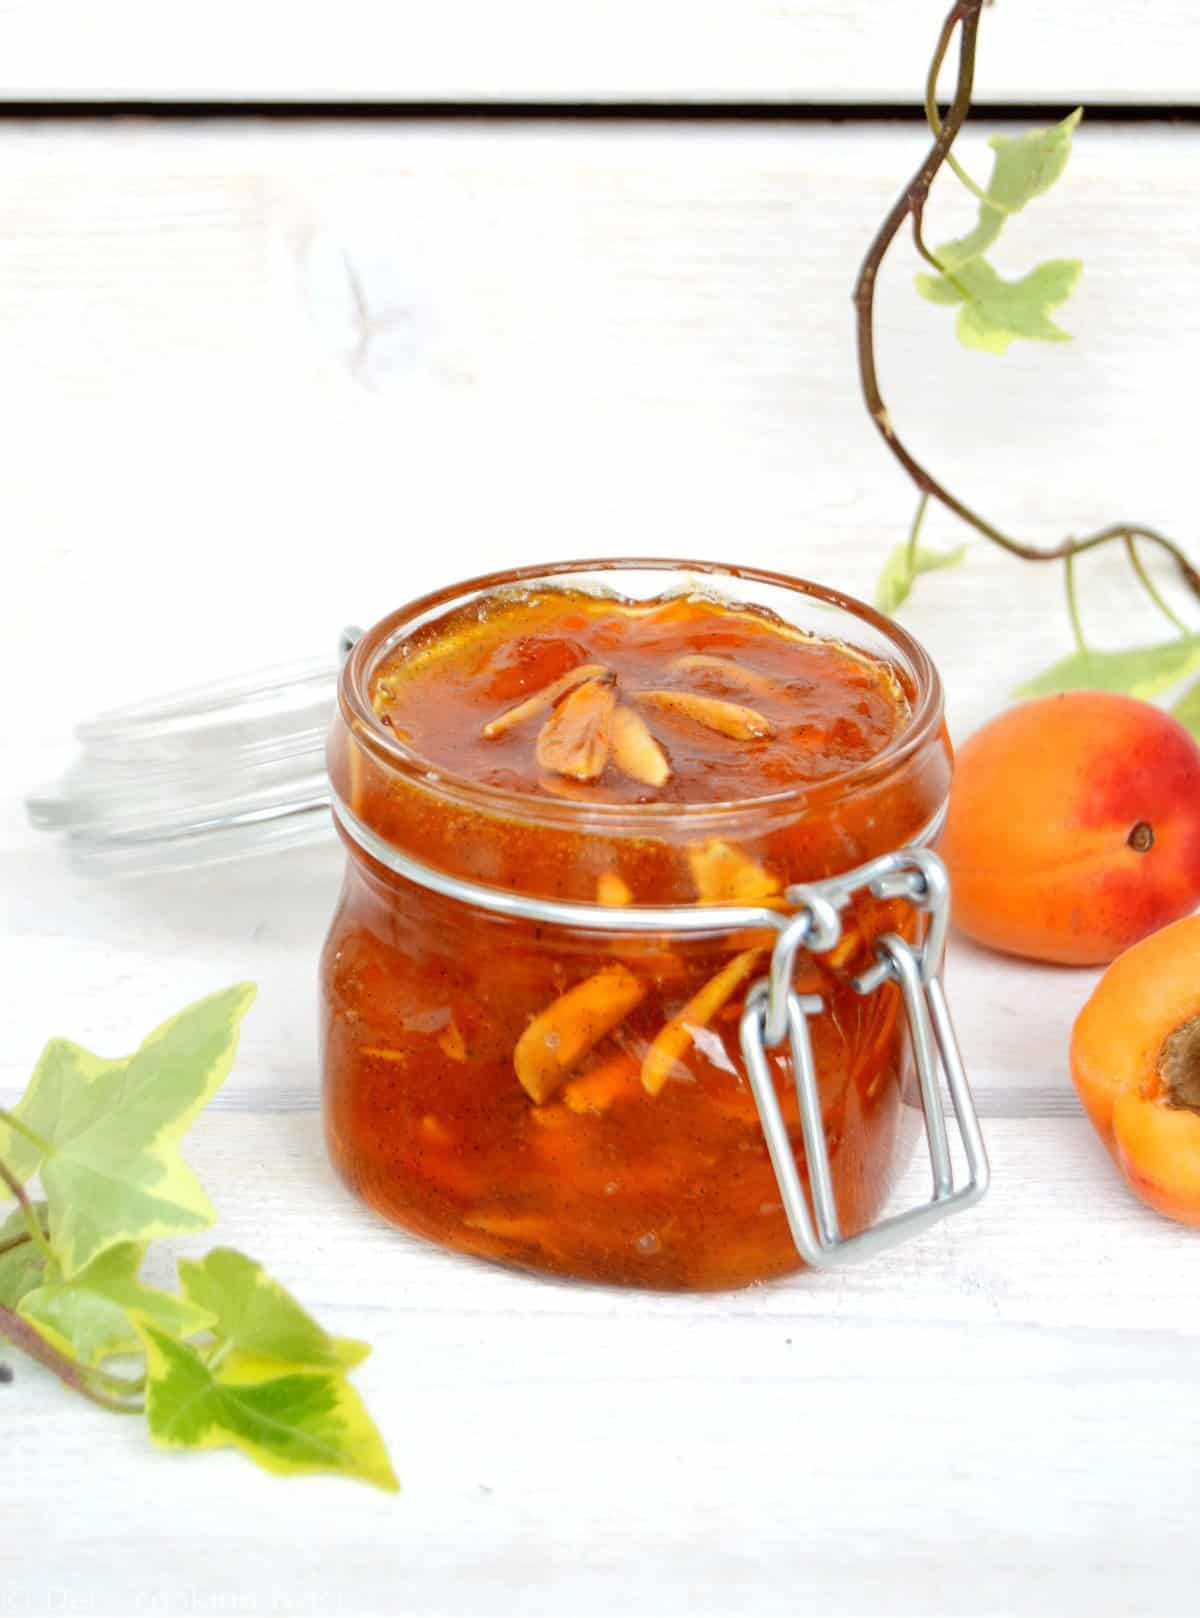 Almond Apricot Jam with Vanilla